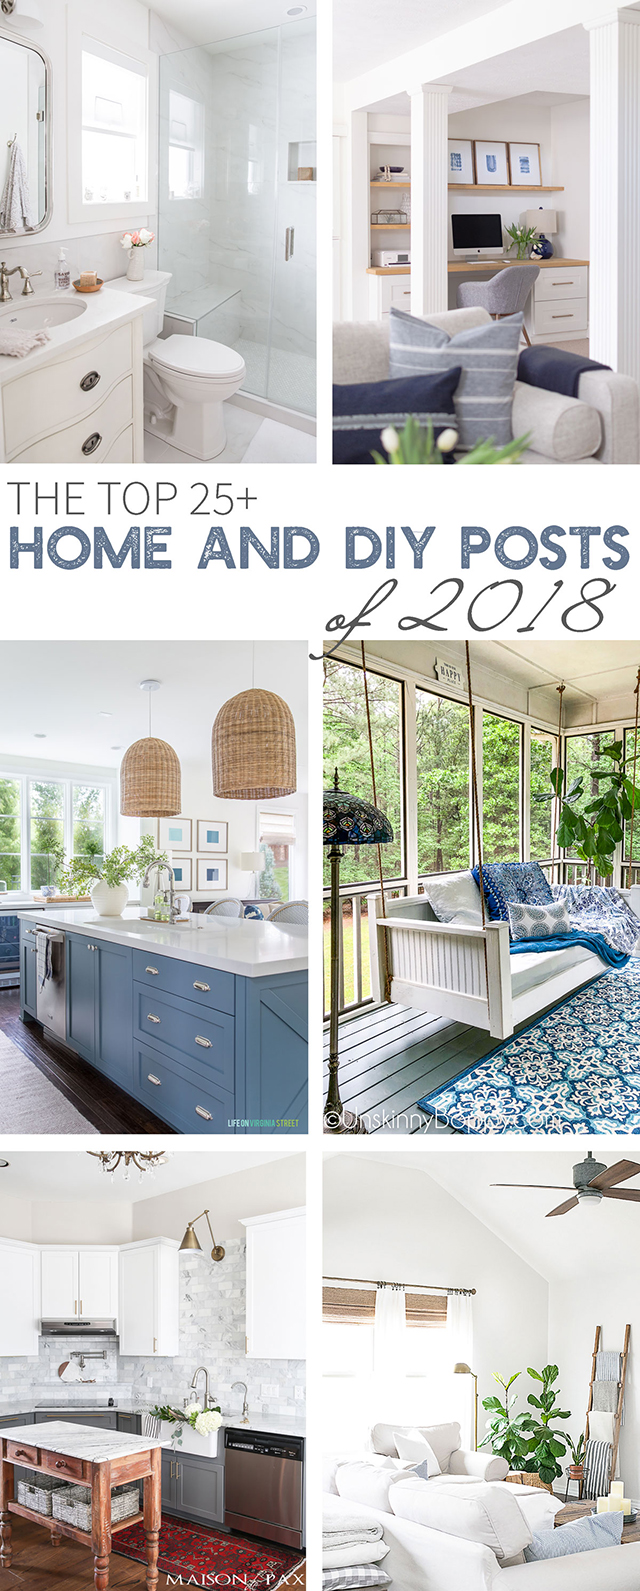 The Best of 2018 from livelaughrowe.com PLUS 20+ other fabulous Home and DIY posts to inspire you!